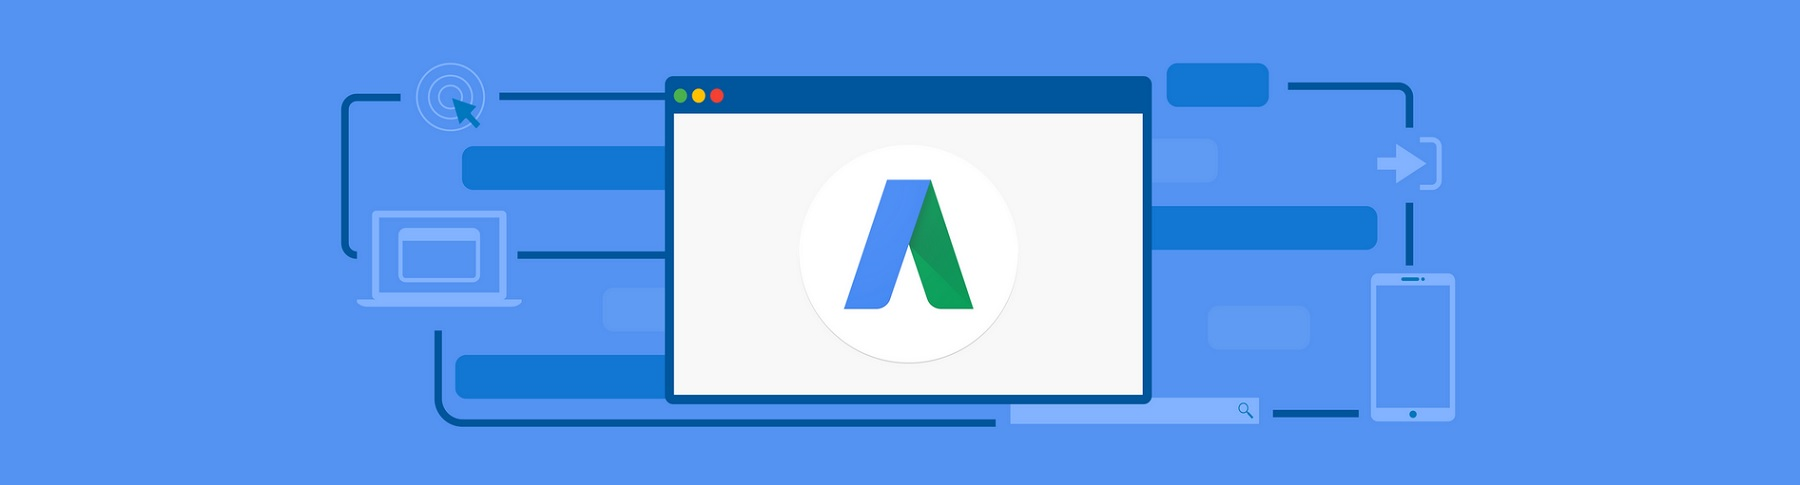 fundamentos de adwords